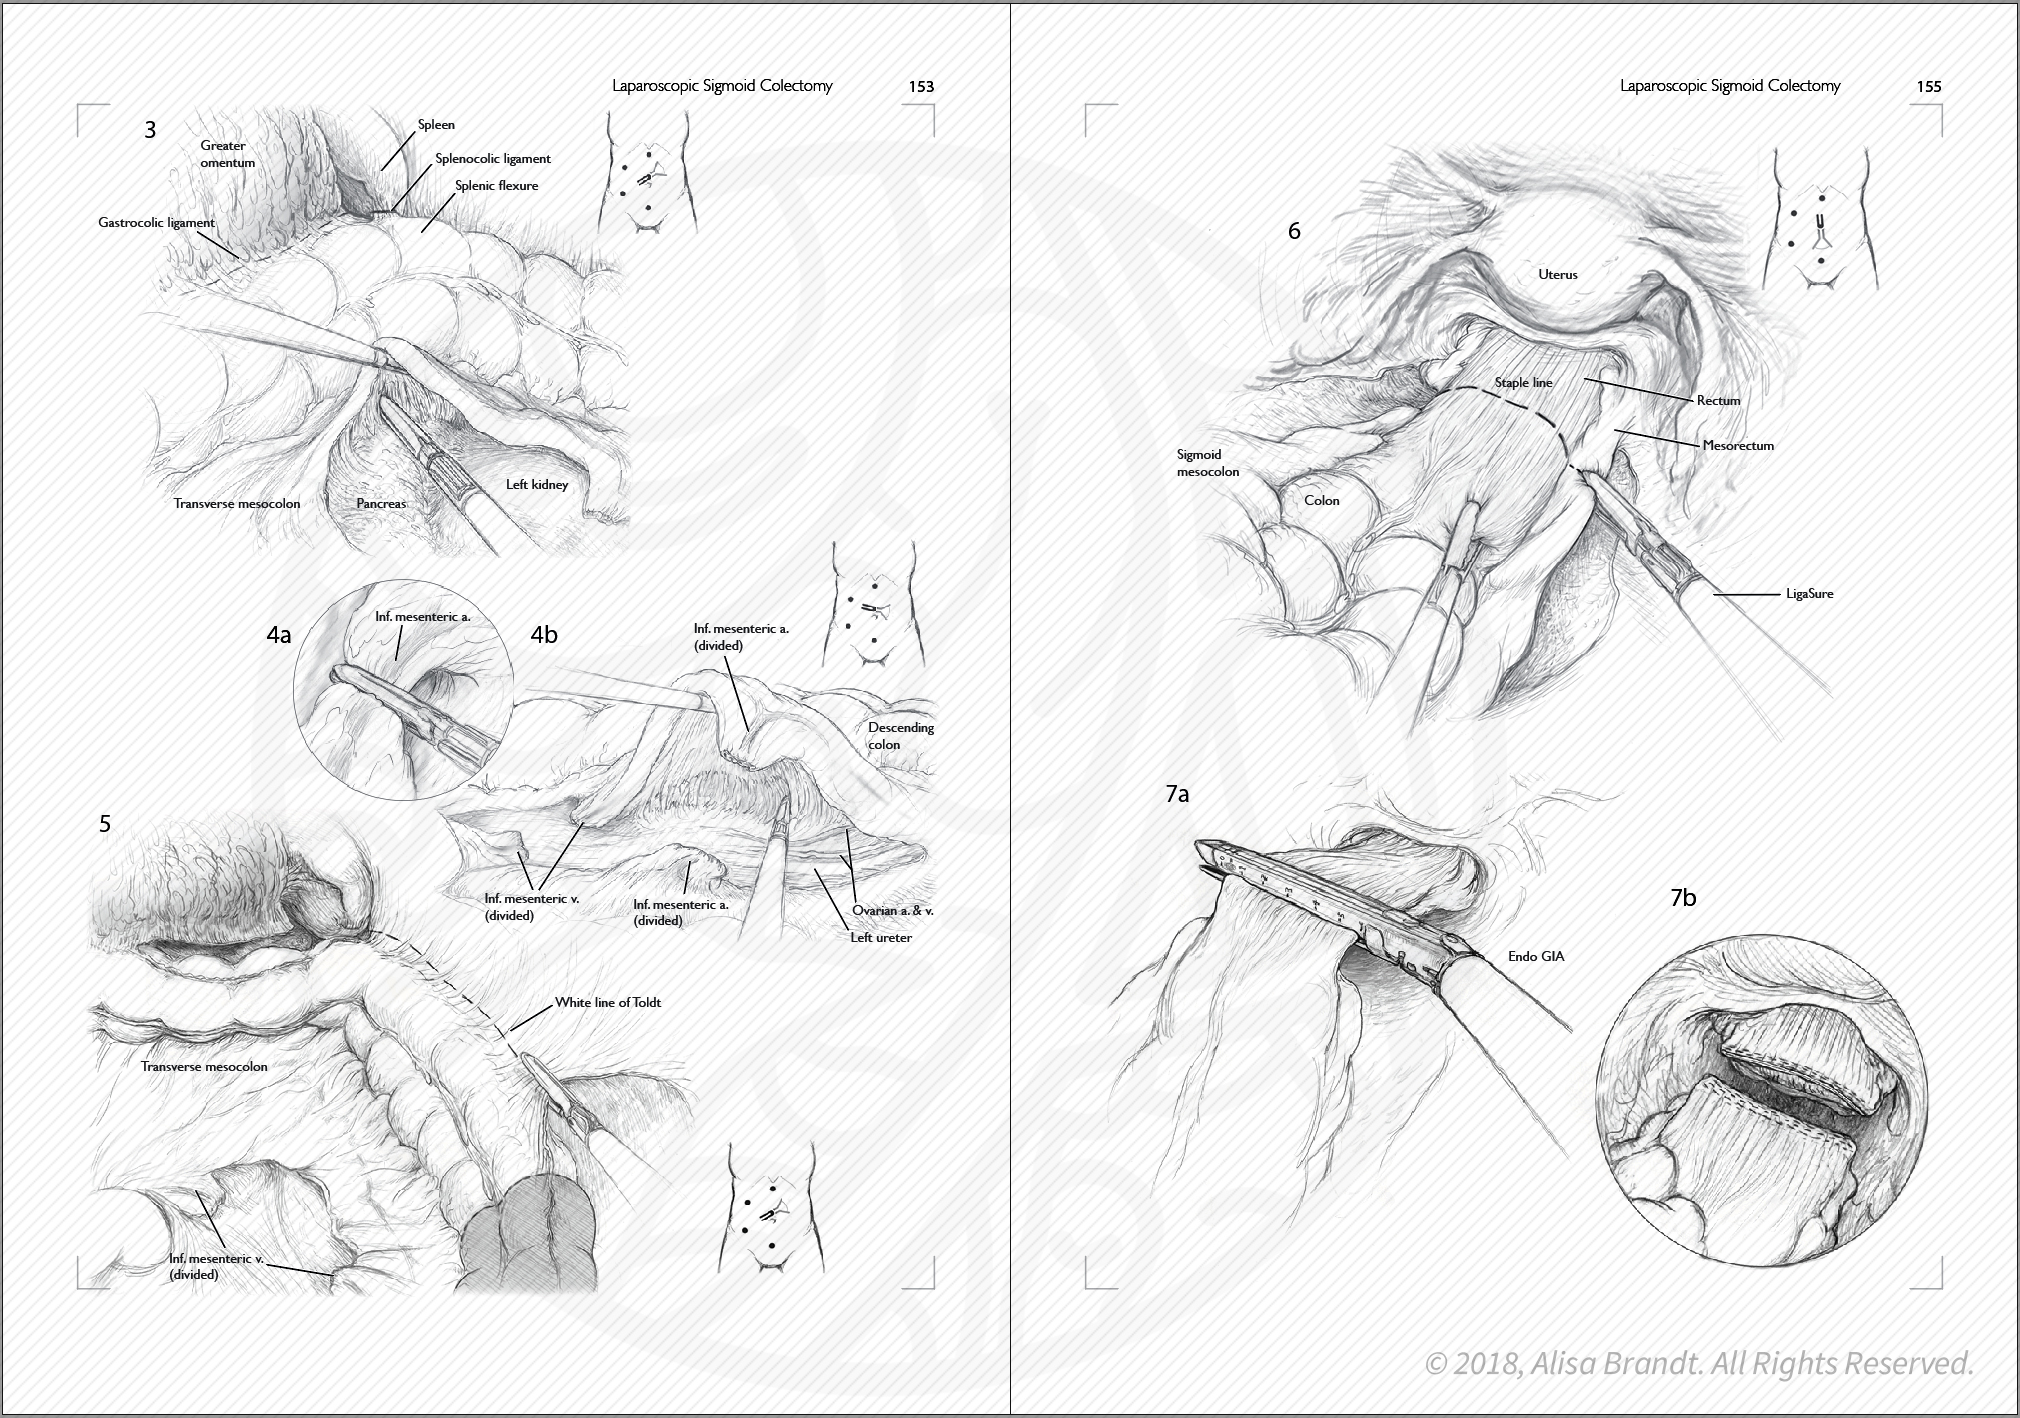 Surgical sketches in a sample surgical atlas layout